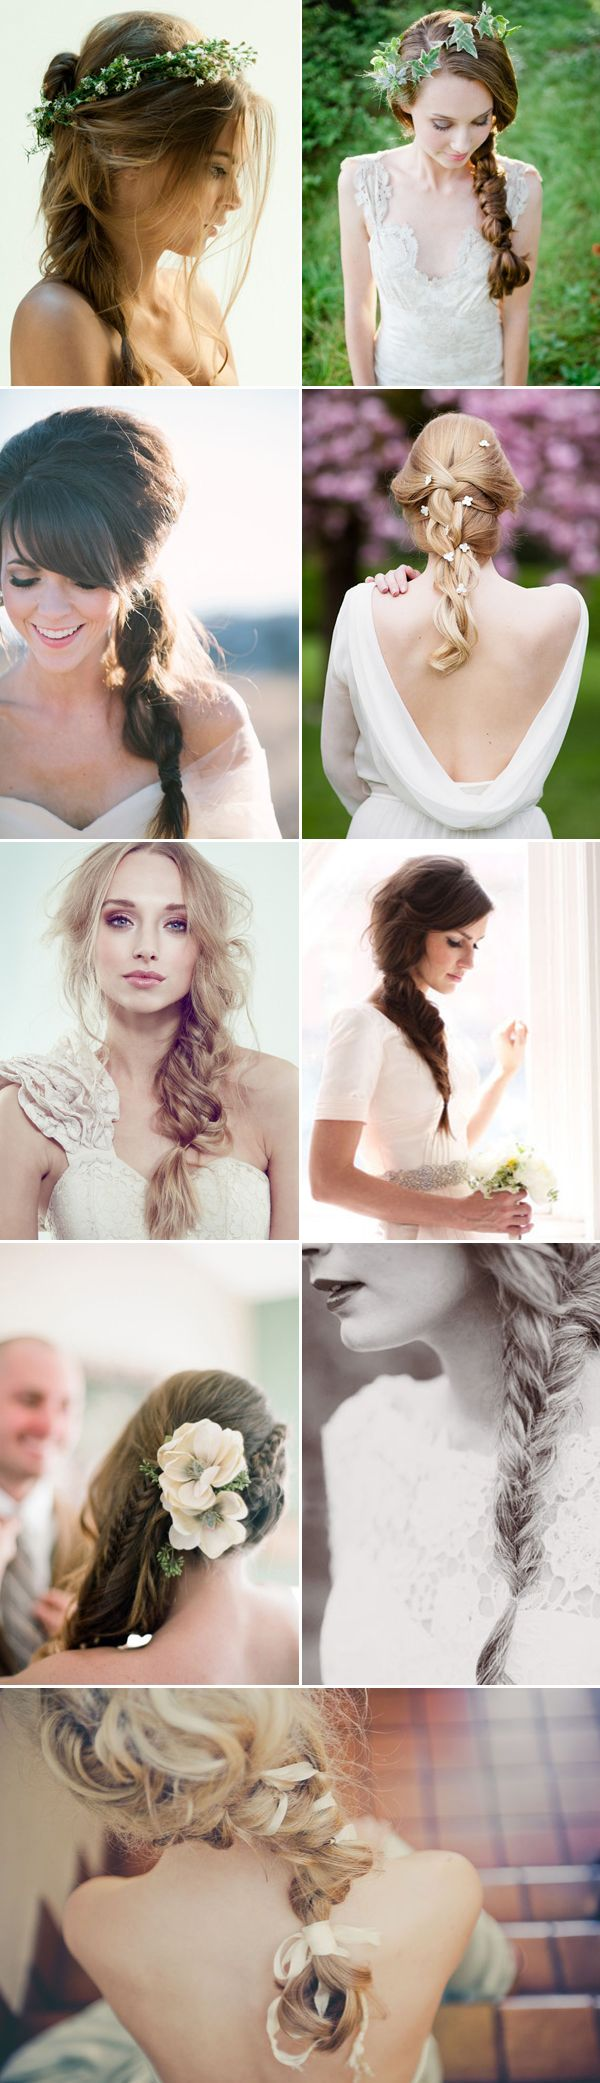 best wedding hairdo images on pinterest bridal hairstyles